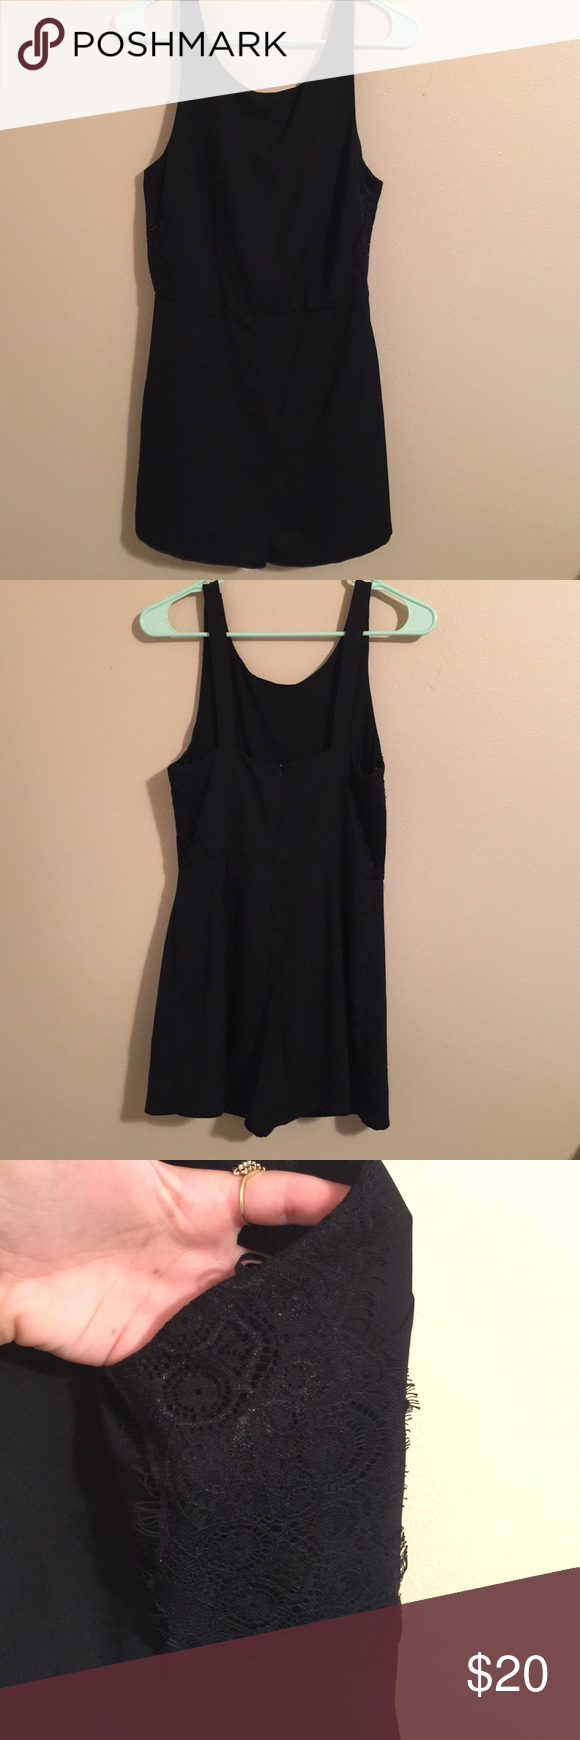 Romper Perfect condition. Never worn. New WITHOUT tags. Forever 21 Dresses